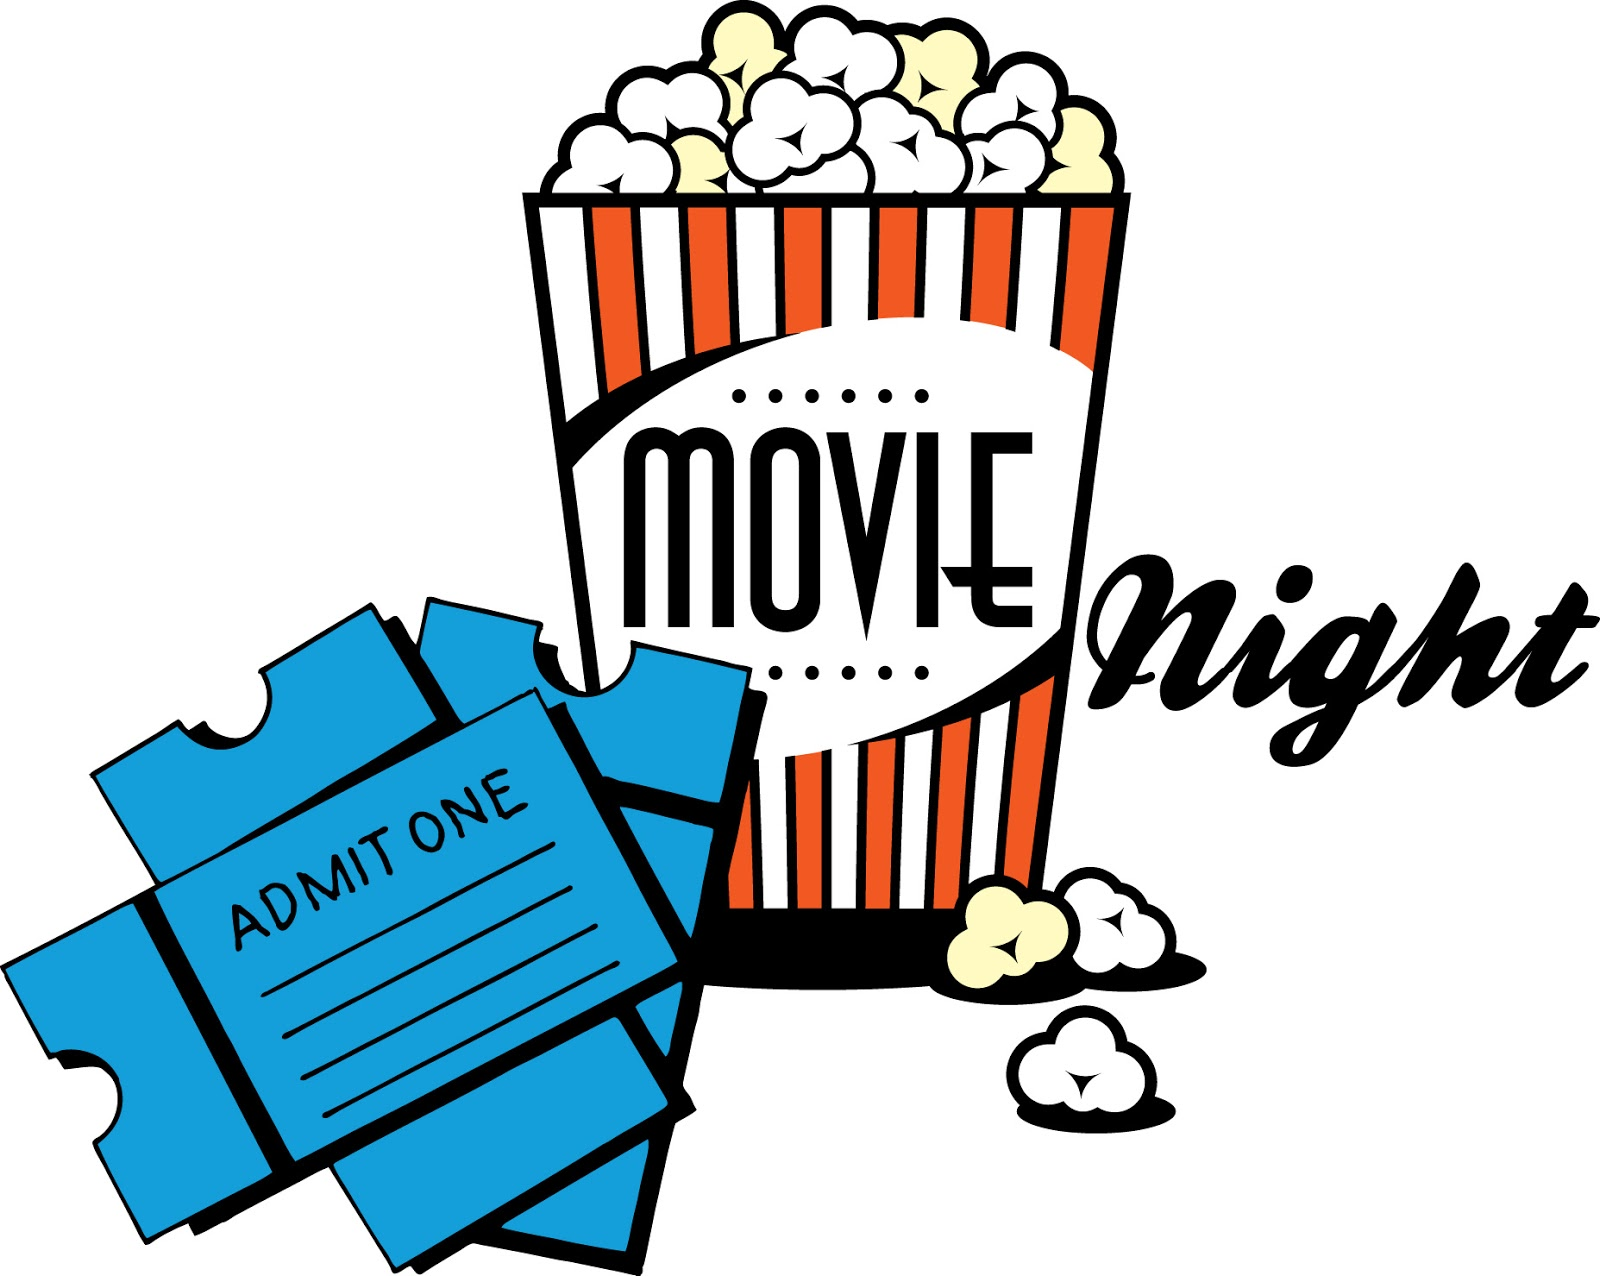 clipart night at getdrawings com free for personal use clipart rh getdrawings com free movie clipart images free clipart movie popcorn